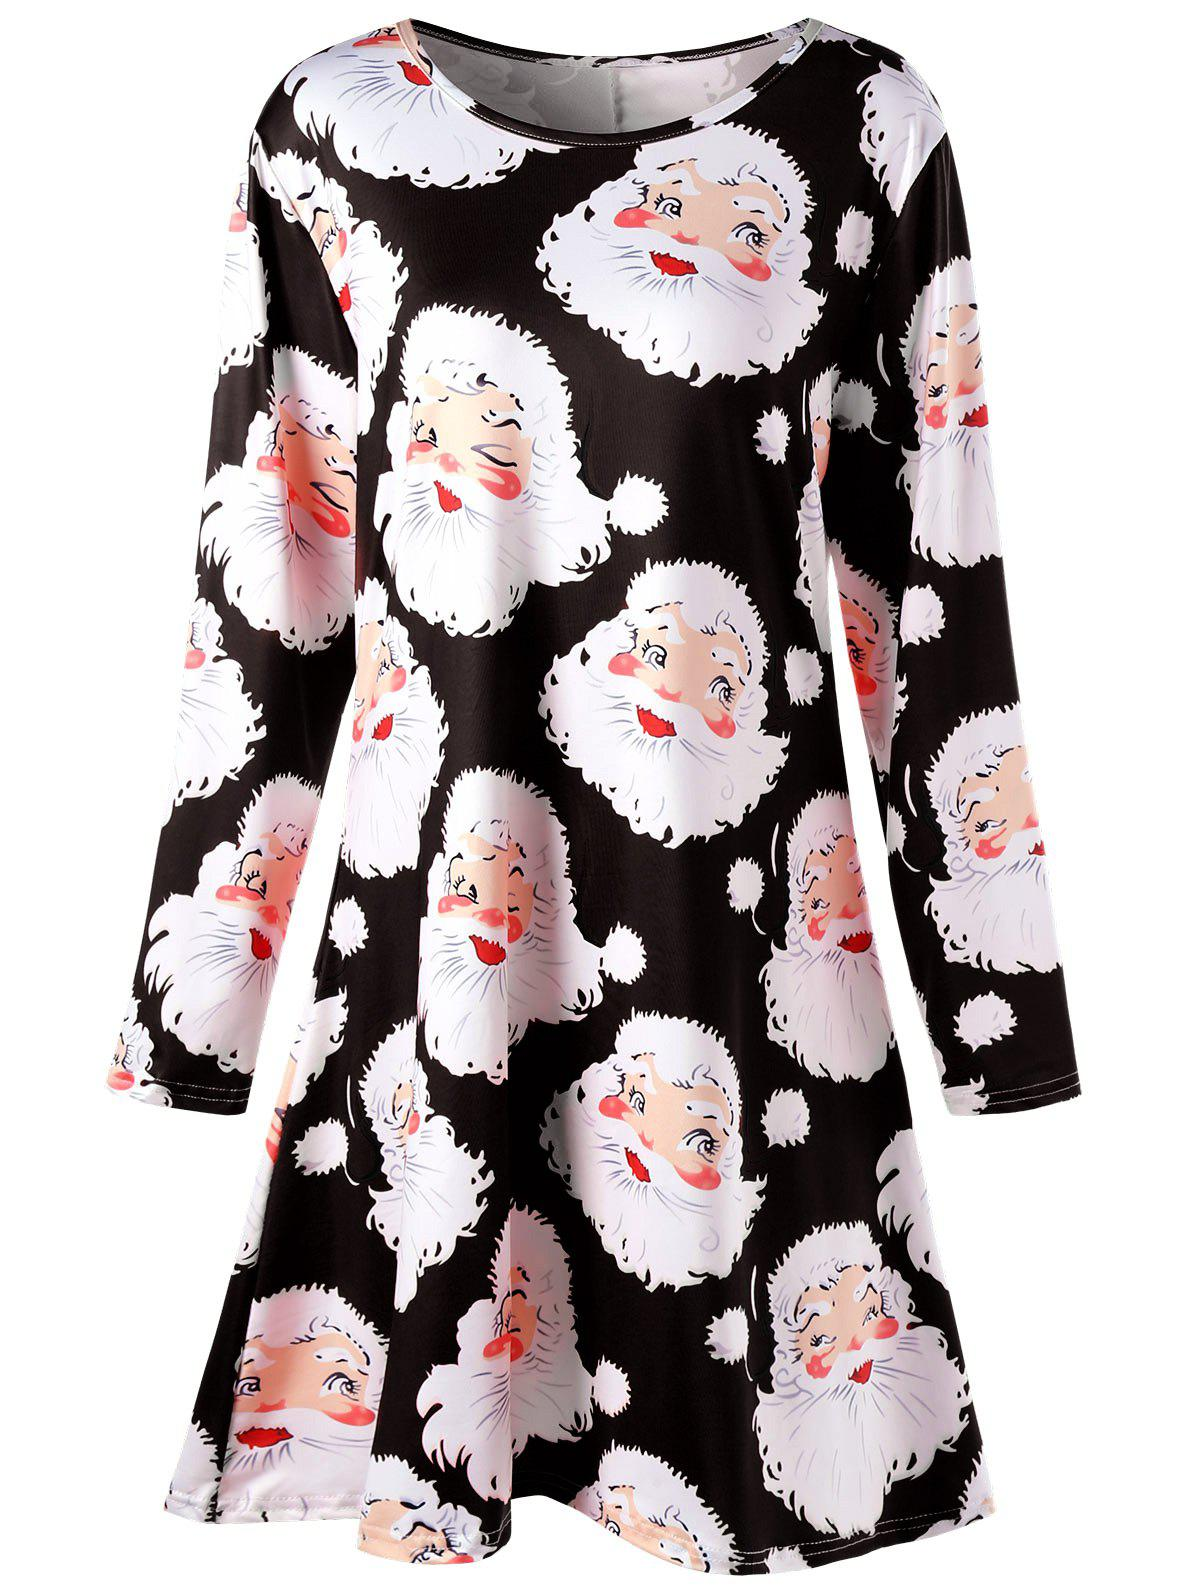 Santa Claus Print Mini Plus Size Swing Skater DressWOMEN<br><br>Size: 5XL; Color: BLACK; Style: Brief; Material: Polyester,Spandex; Silhouette: A-Line; Dresses Length: Mini; Neckline: Round Collar; Sleeve Length: Long Sleeves; Pattern Type: Print; With Belt: No; Season: Fall,Spring; Weight: 0.4200kg; Package Contents: 1 x Dress;